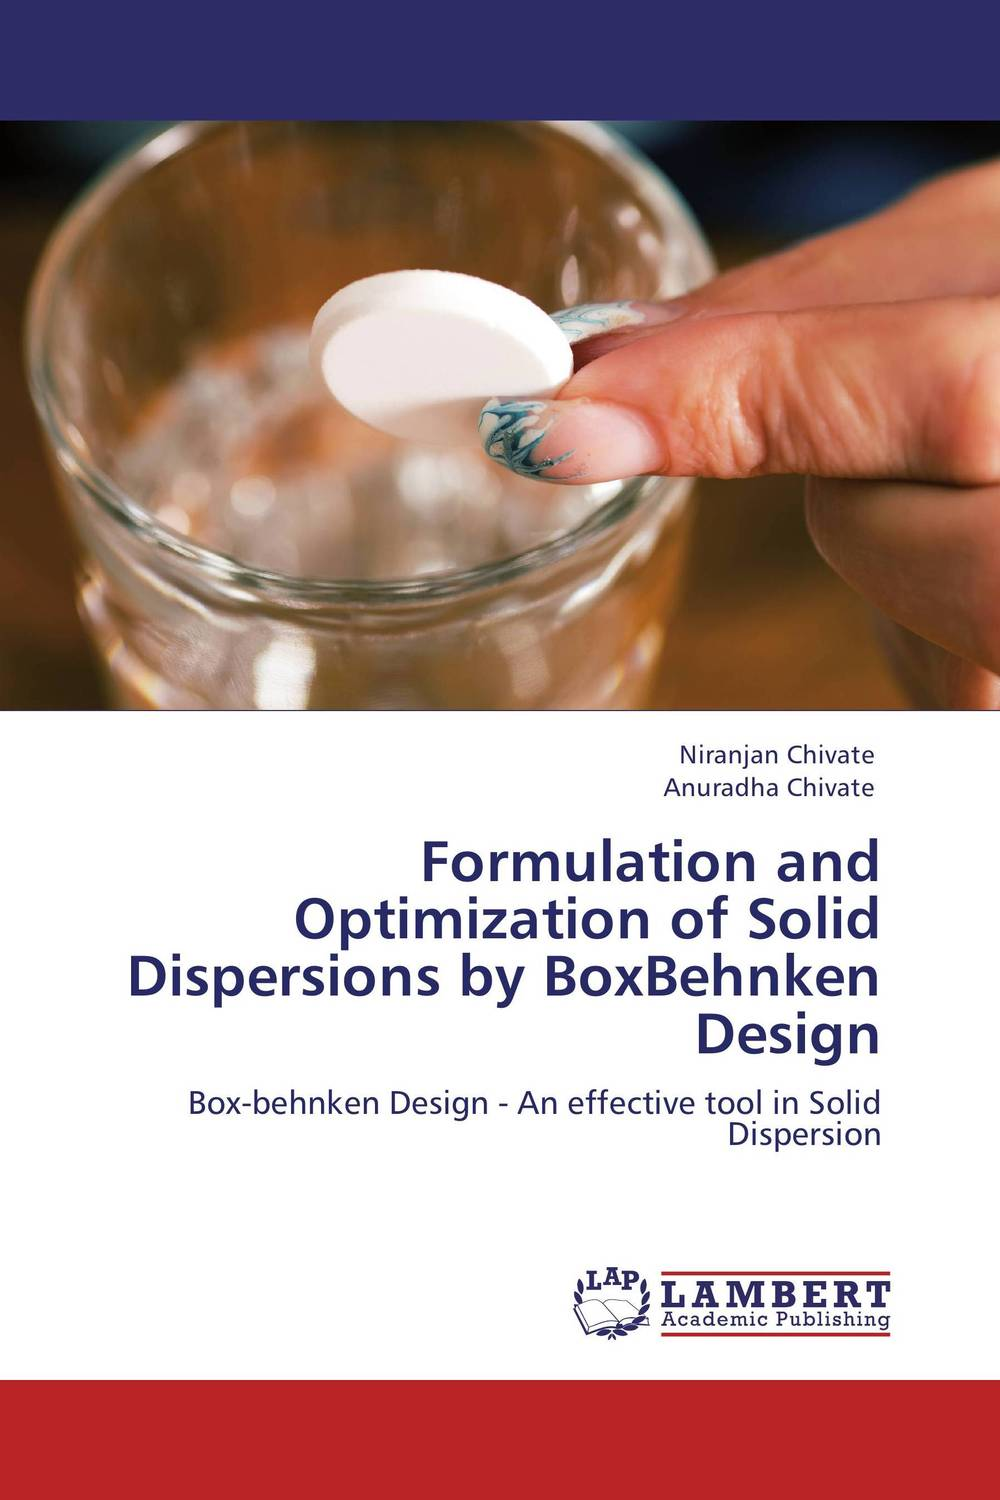 Formulation and Optimization of Solid Dispersions by BoxBehnken Design drug discovery and design